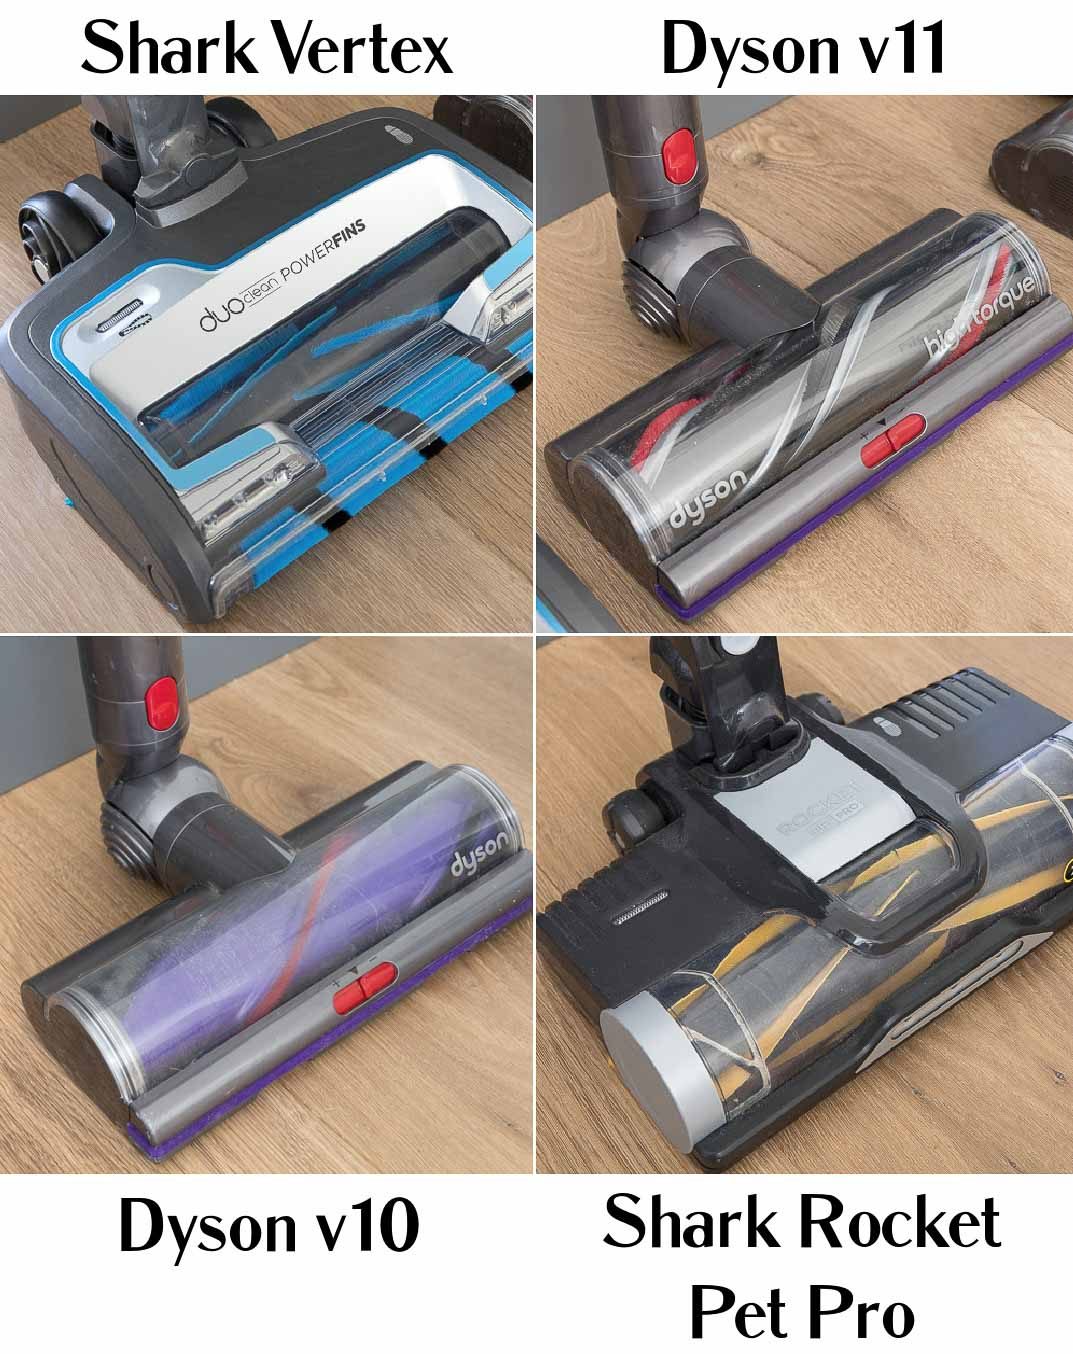 Review of Shark vs. Dyson cordless vacuums